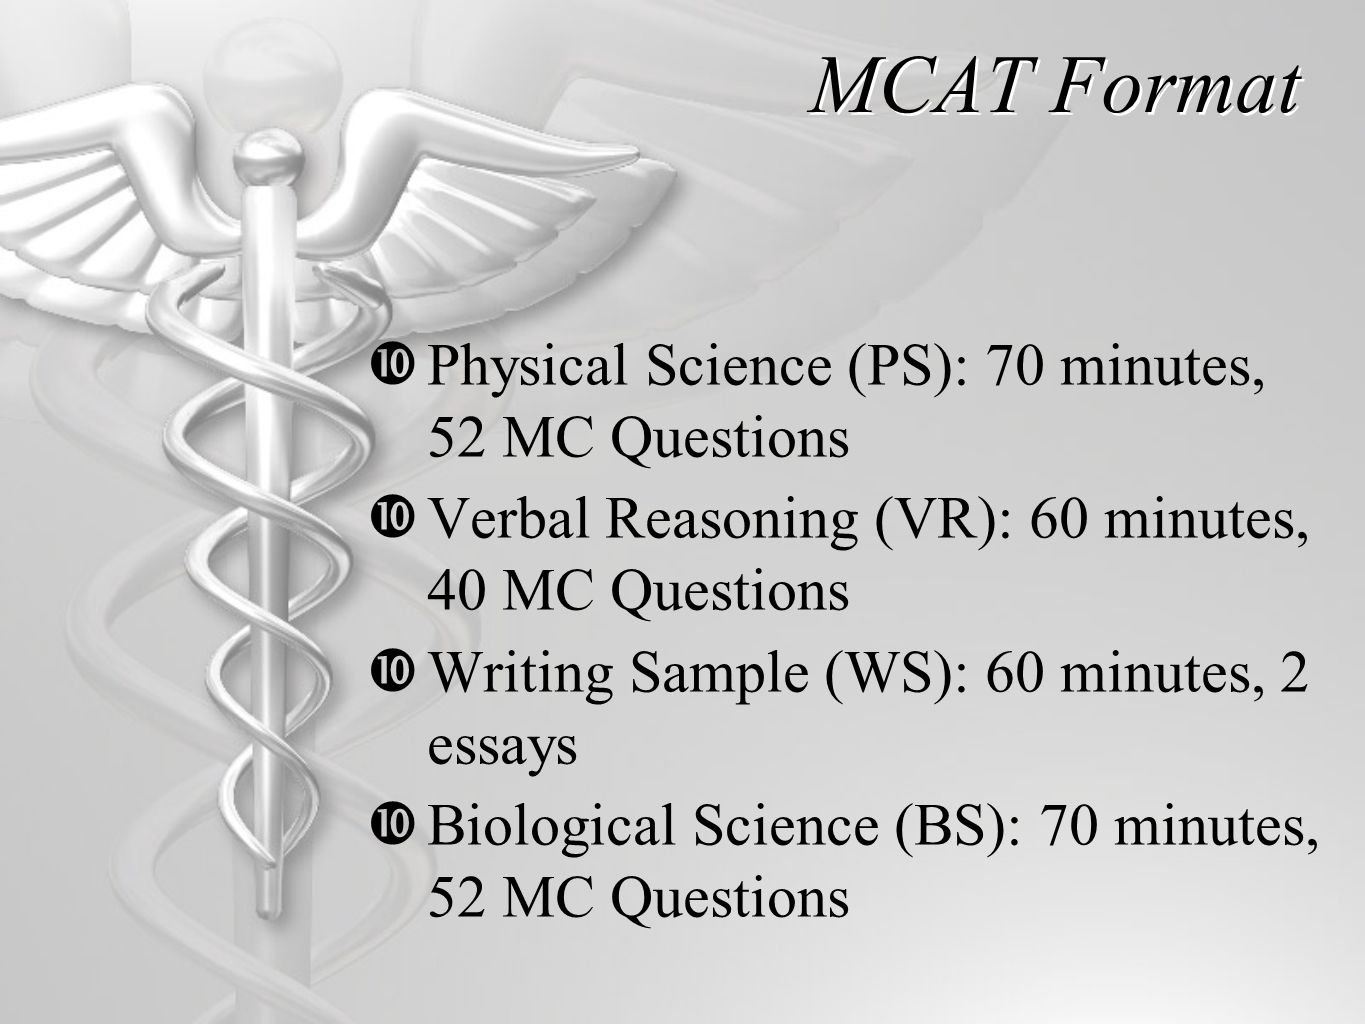 MCAT Format  Physical Science (PS): 70 minutes, 52 MC Questions  Verbal Reasoning (VR): 60 minutes, 40 MC Questions  Writing Sample (WS): 60 minutes, 2 essays  Biological Science (BS): 70 minutes, 52 MC Questions